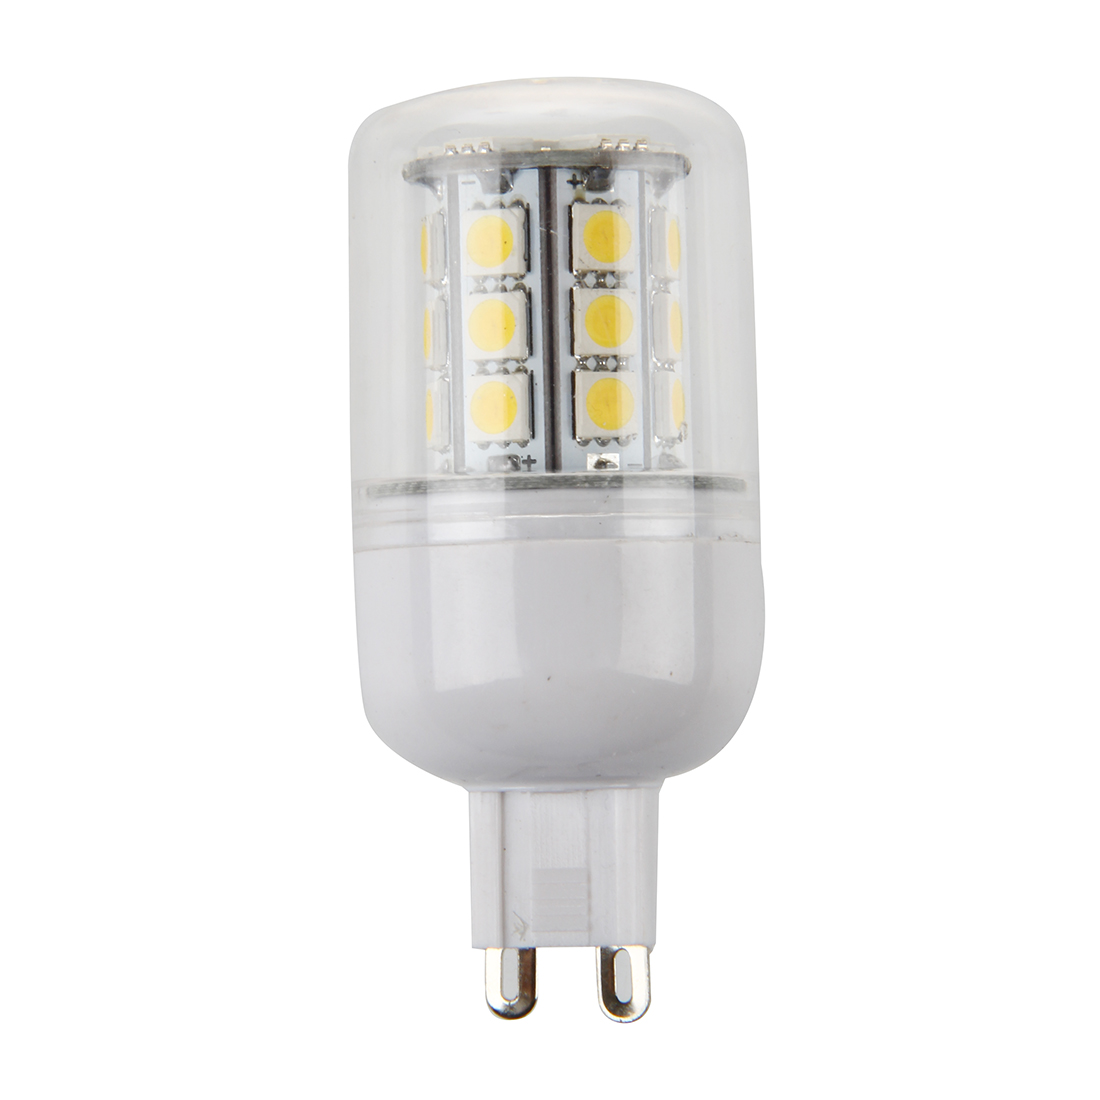 g9 warmweiss 27 smd led scheinwerfer lampen birne 5w k9p6 ebay. Black Bedroom Furniture Sets. Home Design Ideas